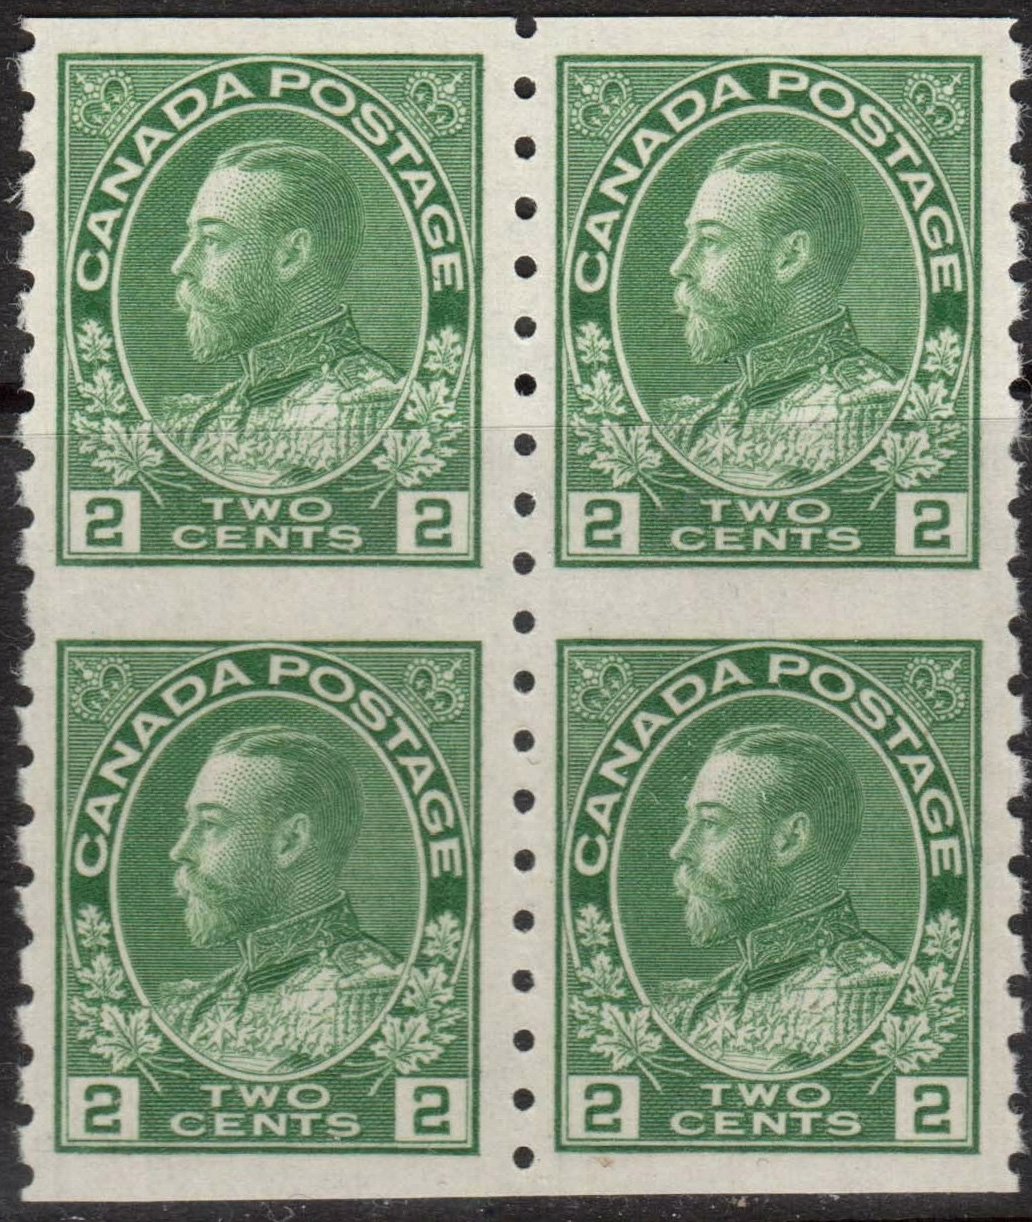 King Georges V - 2 cents 1922 - Canadian stamp - Block of 4 - 128a